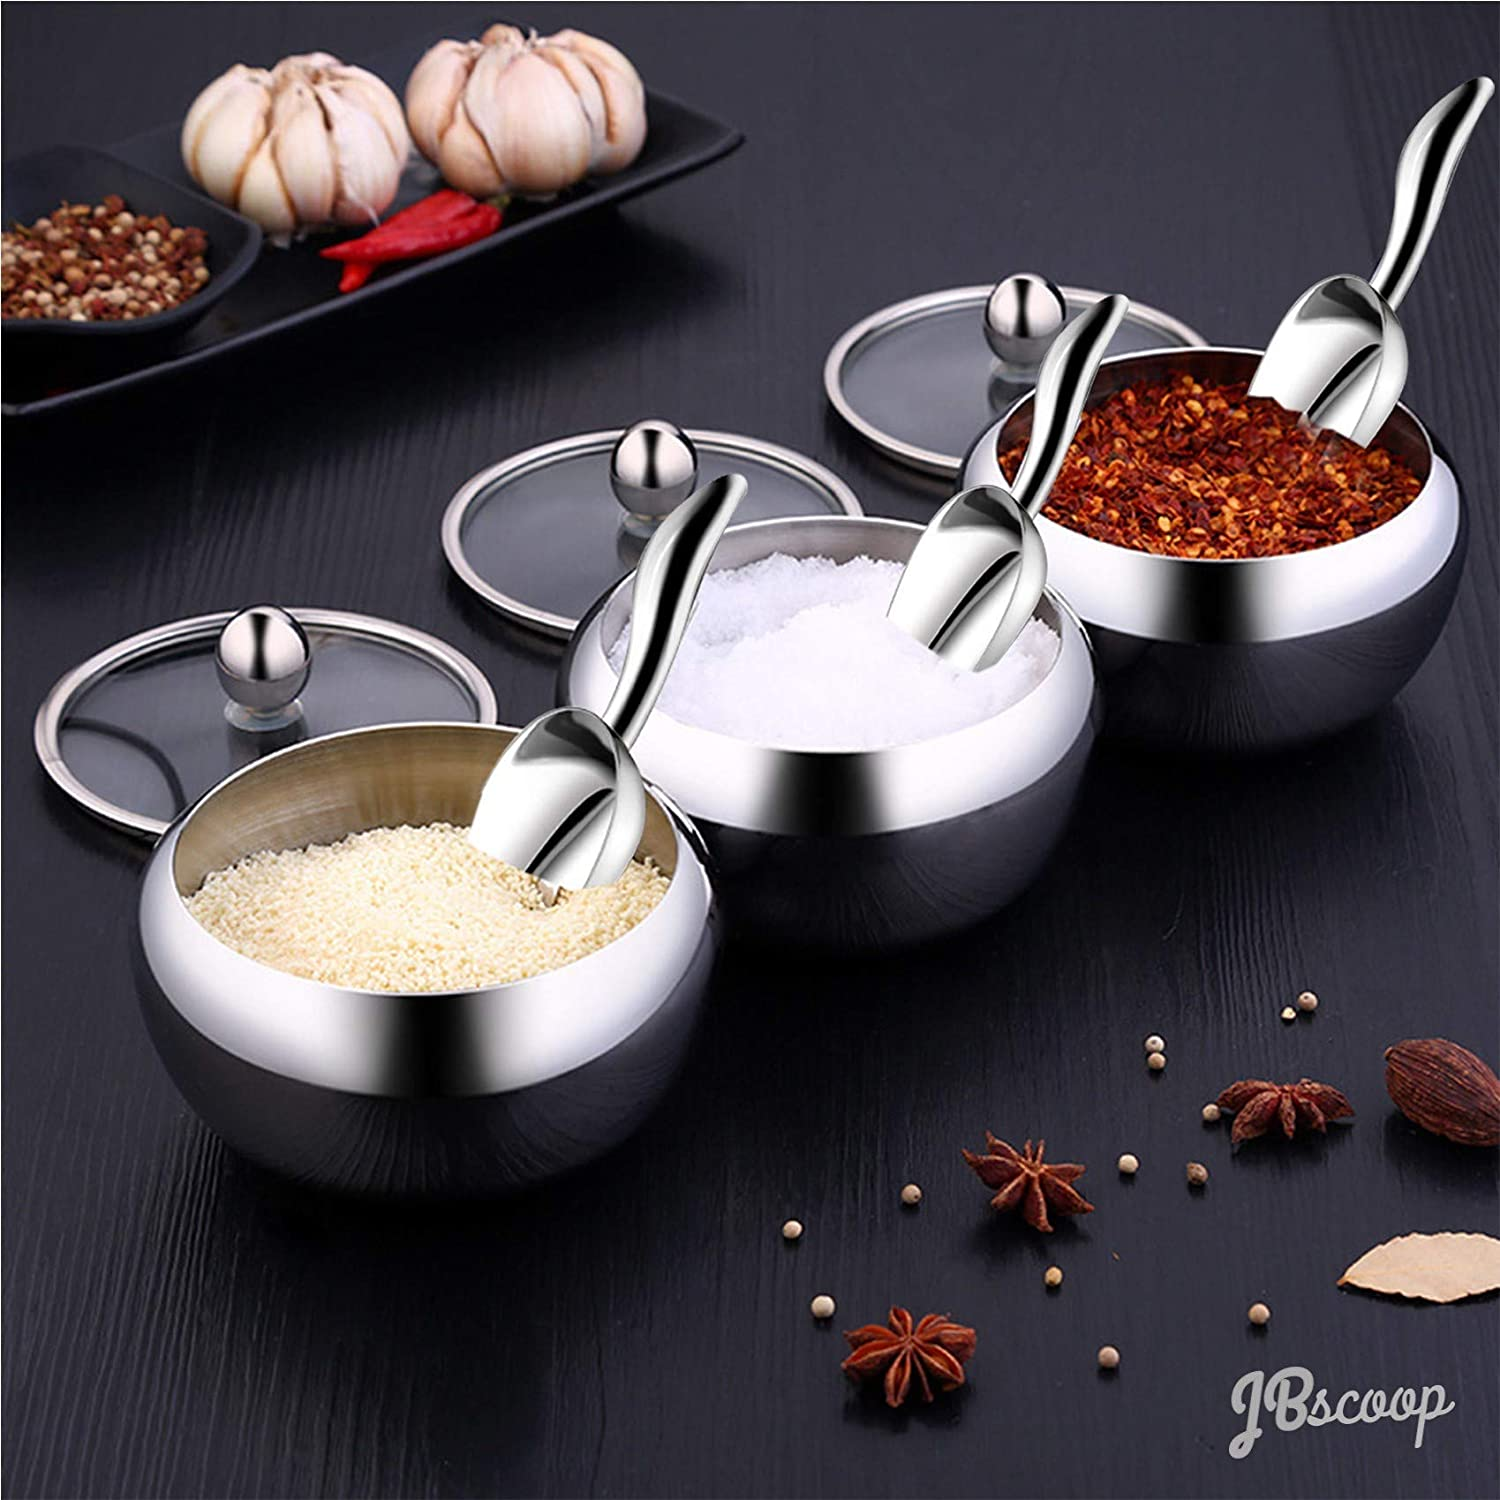 Protein Powder Heavy Duty Dishwasher Safe/… Small Ice Scoops Canister Scoop Shaped Set of 4 Sugar Mini Scoop 3 Ounce Stainless Steel Kitchen Utility Scoops For Ice Cube Coffee Bean